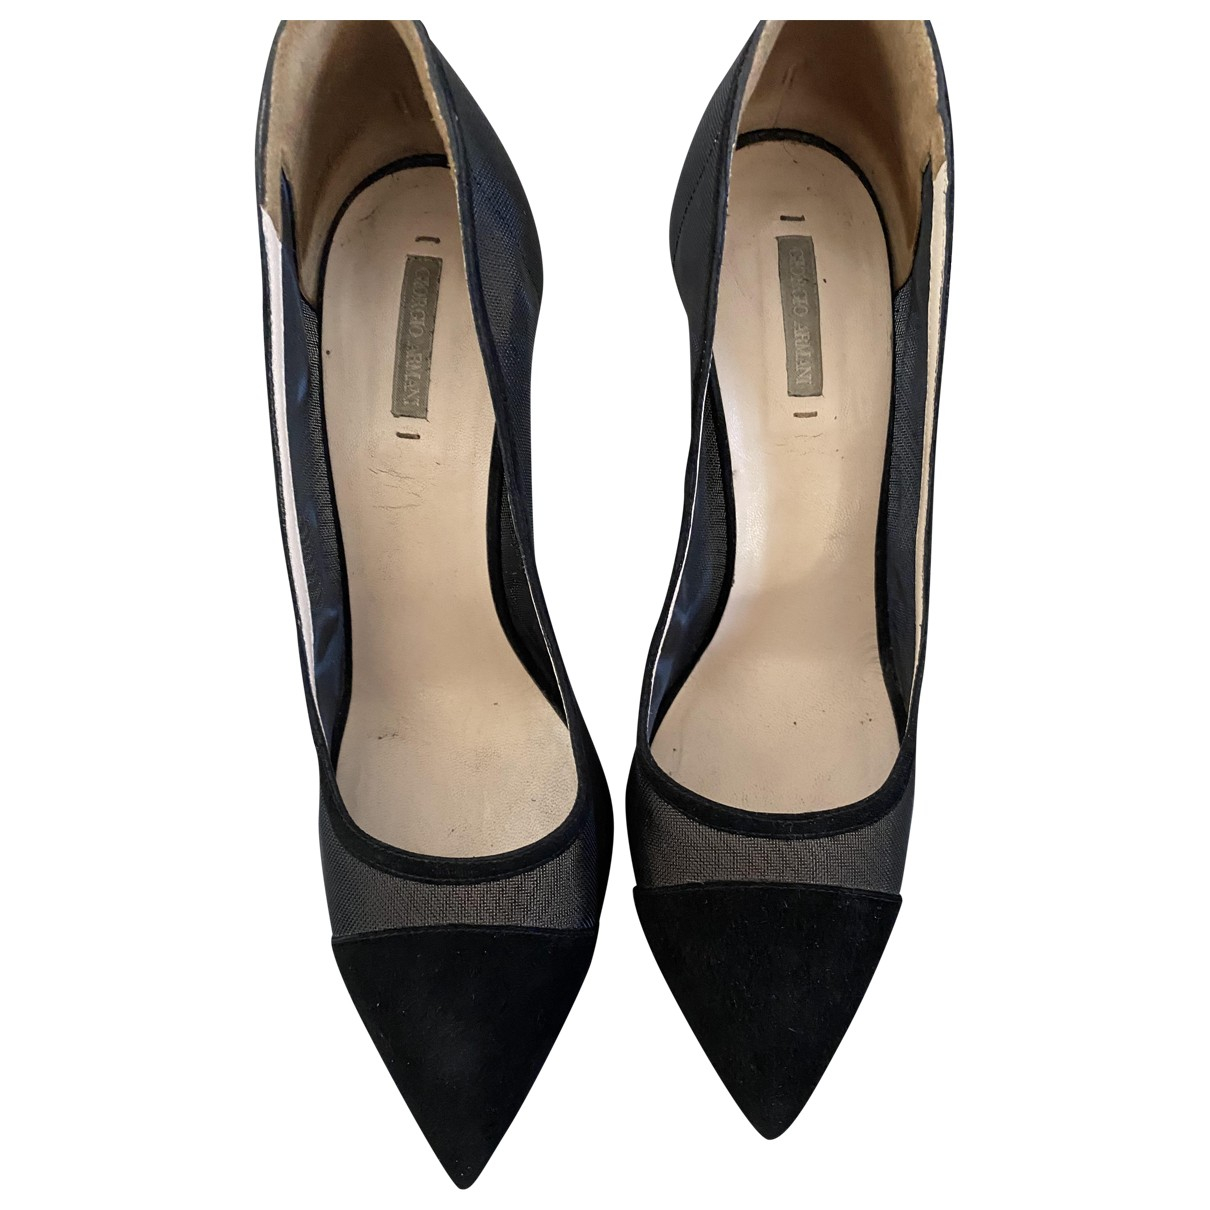 Giorgio Armani \N Black Suede Heels for Women 36.5 EU